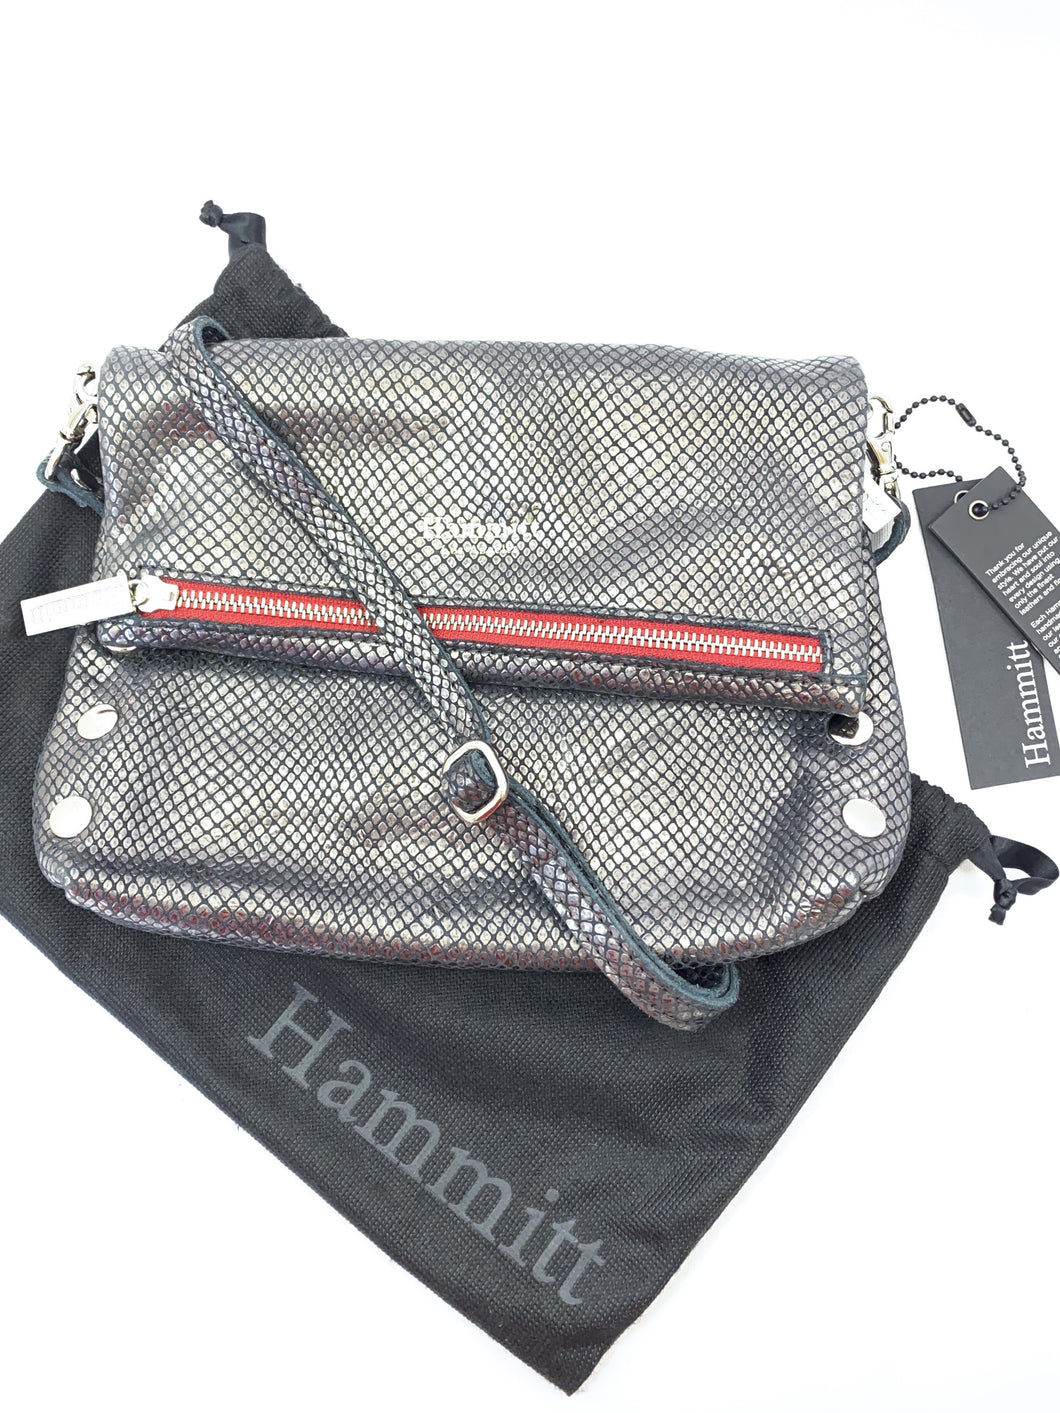 Hammitt vip pewter glacier zip crossbody - My Girlfriend's Wardrobe York Pa